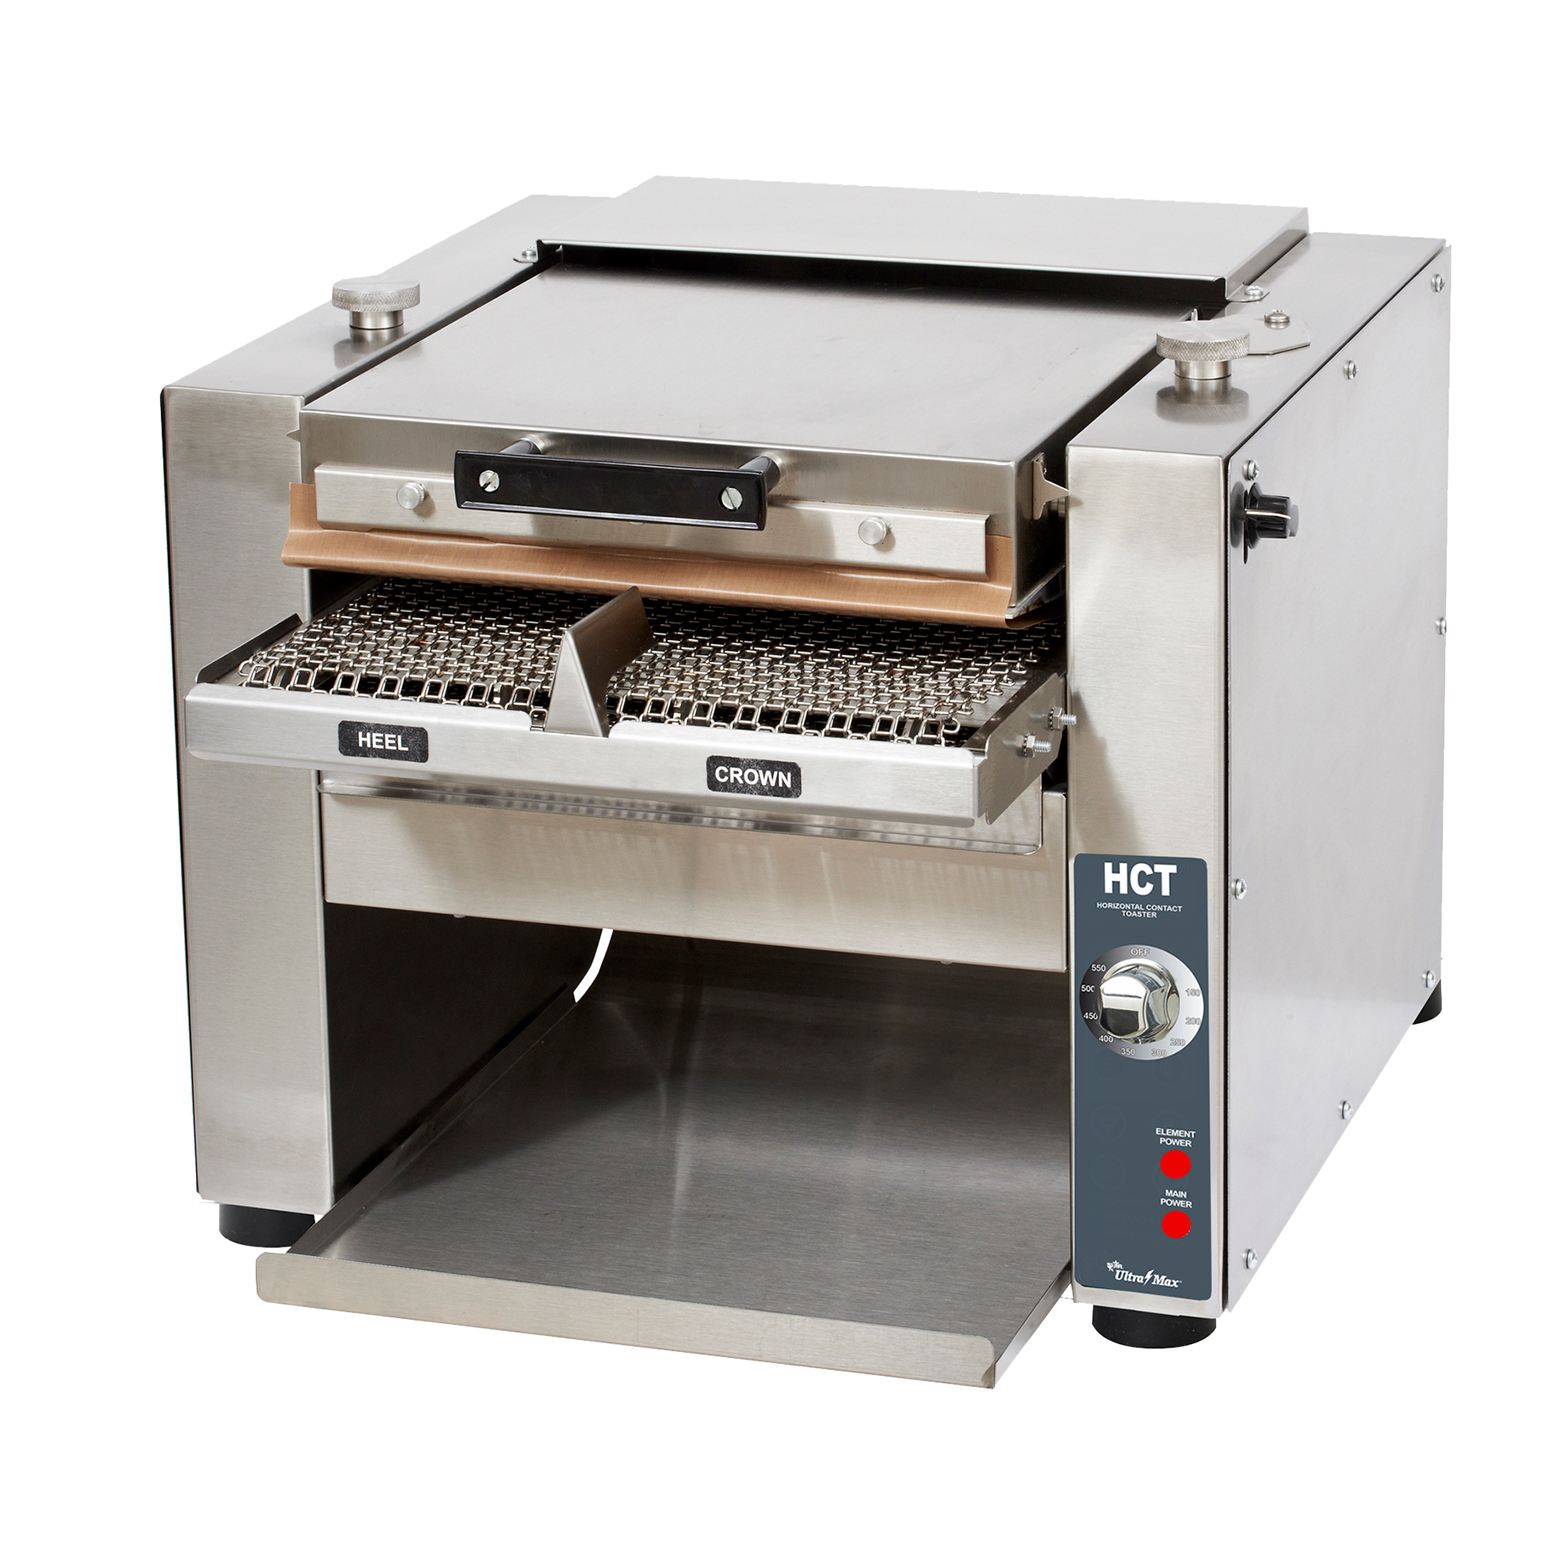 Star HCT13S toaster, contact grill, conveyor type